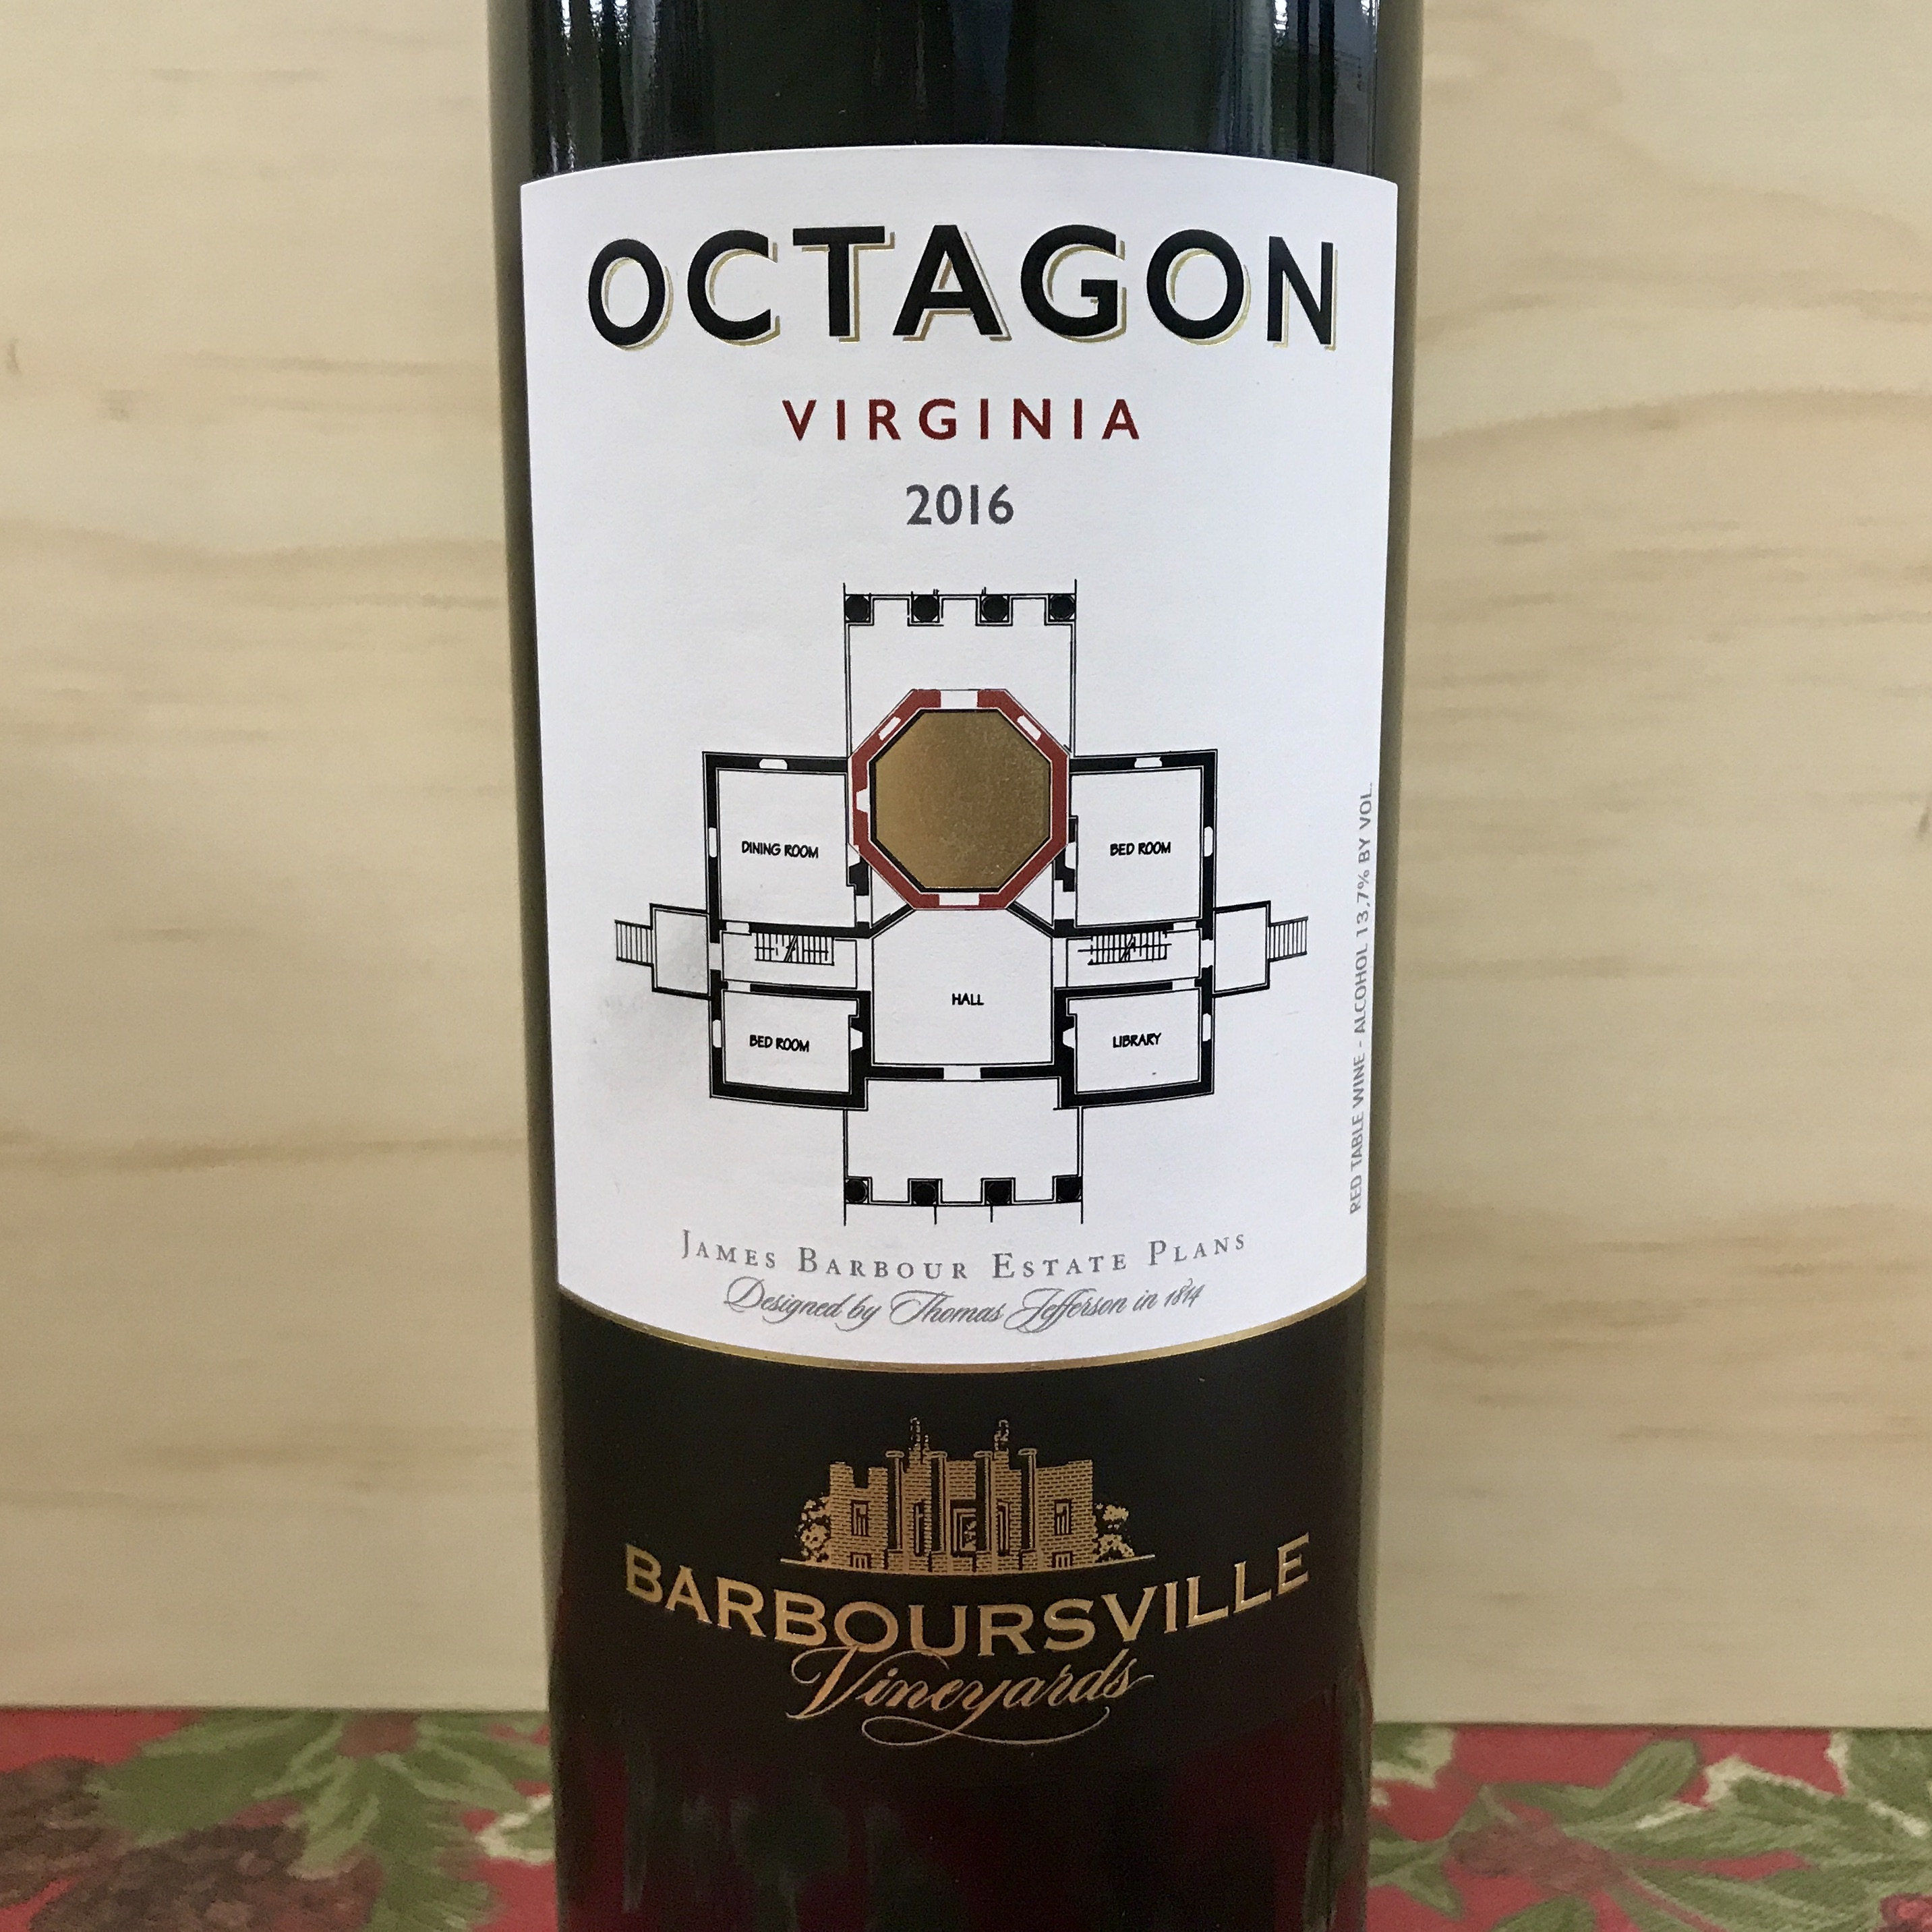 Barboursville Vineyards Octagon 2016